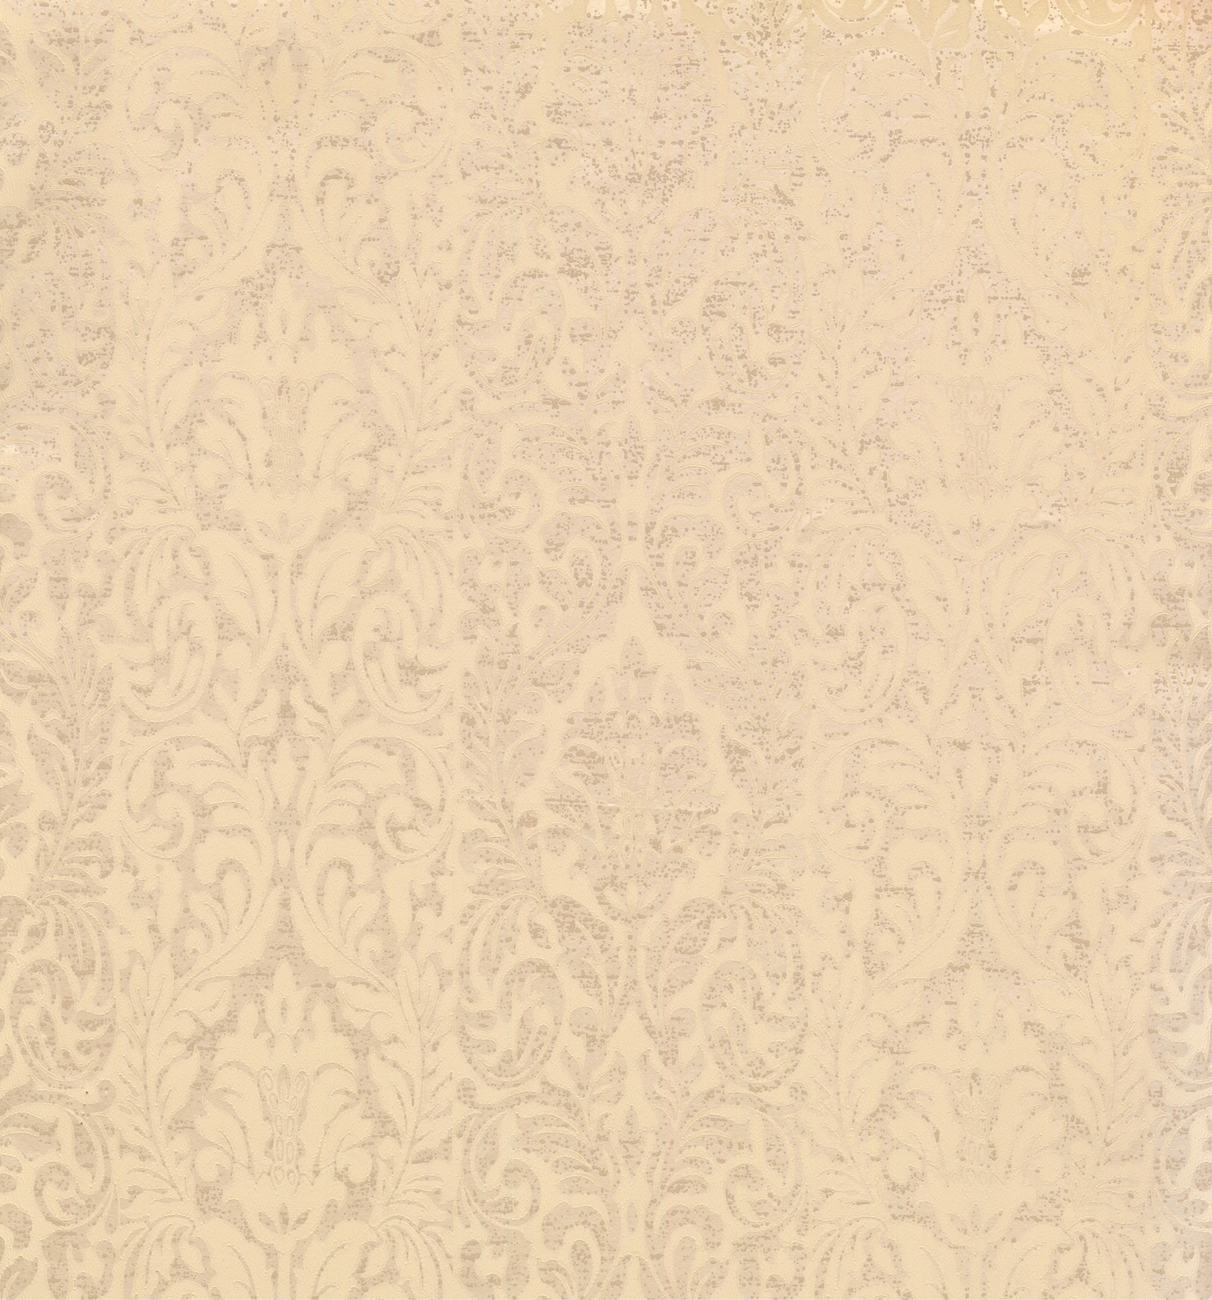 CL2_PAISLEY - Traditional Color Beige Wallpaper Roll - image 1 of 1